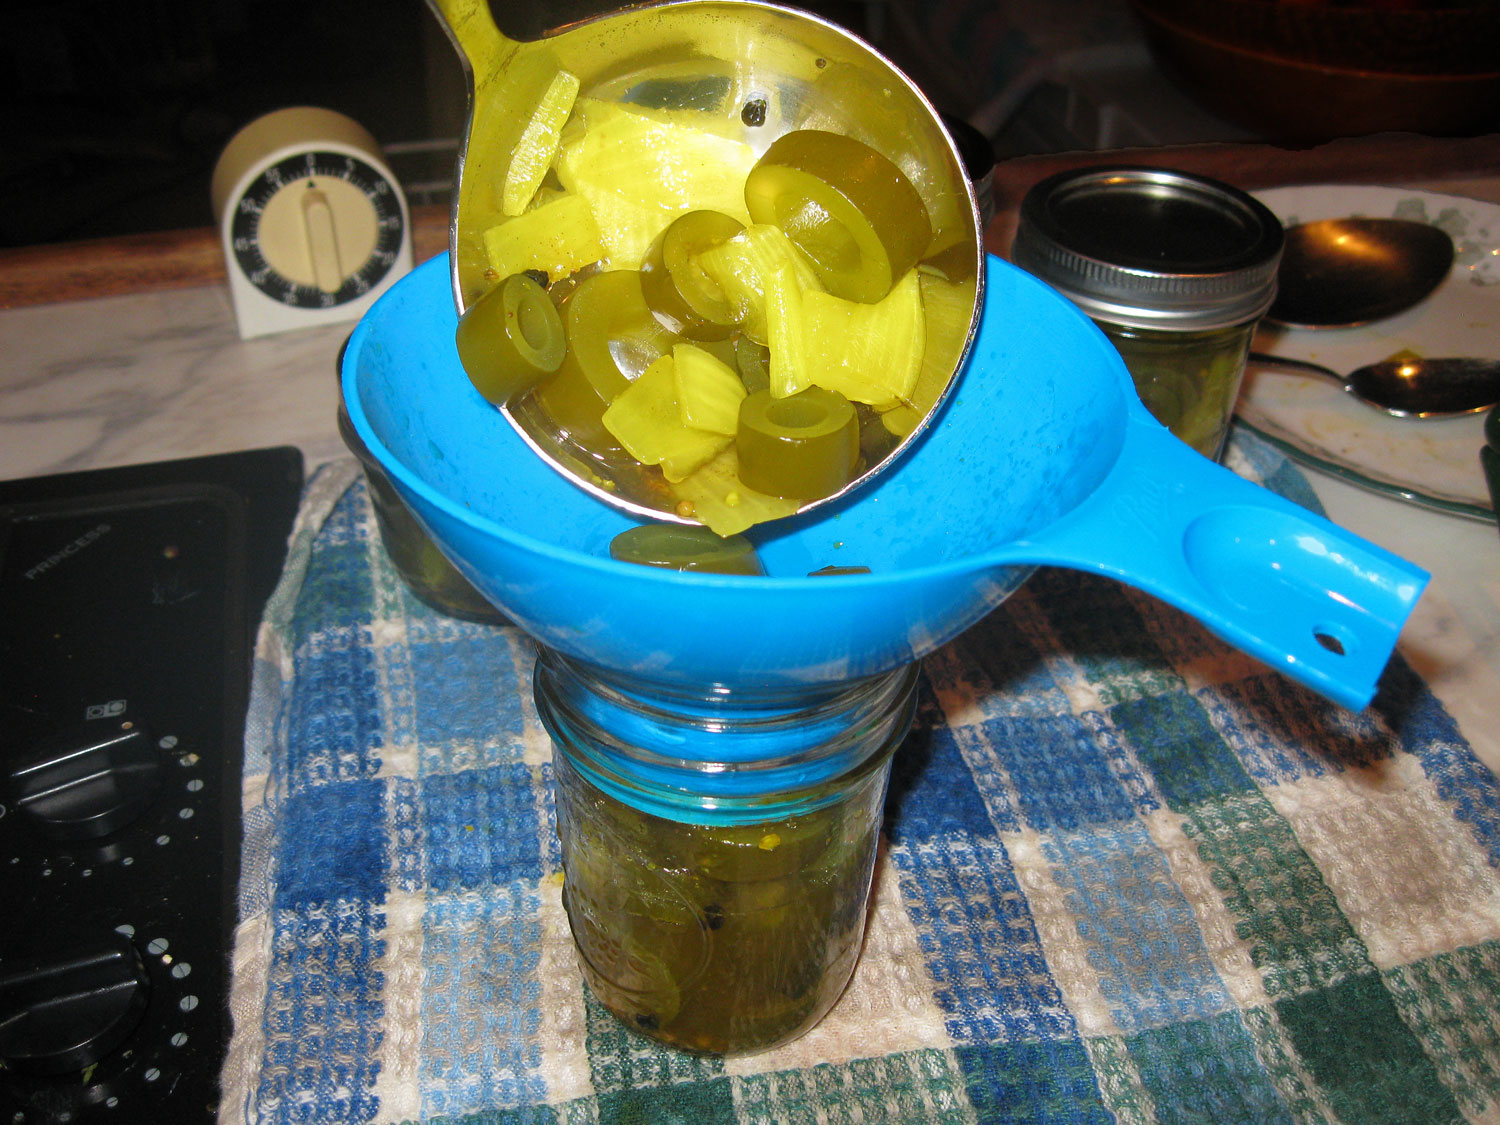 Ladling kelp pickles into the jar.